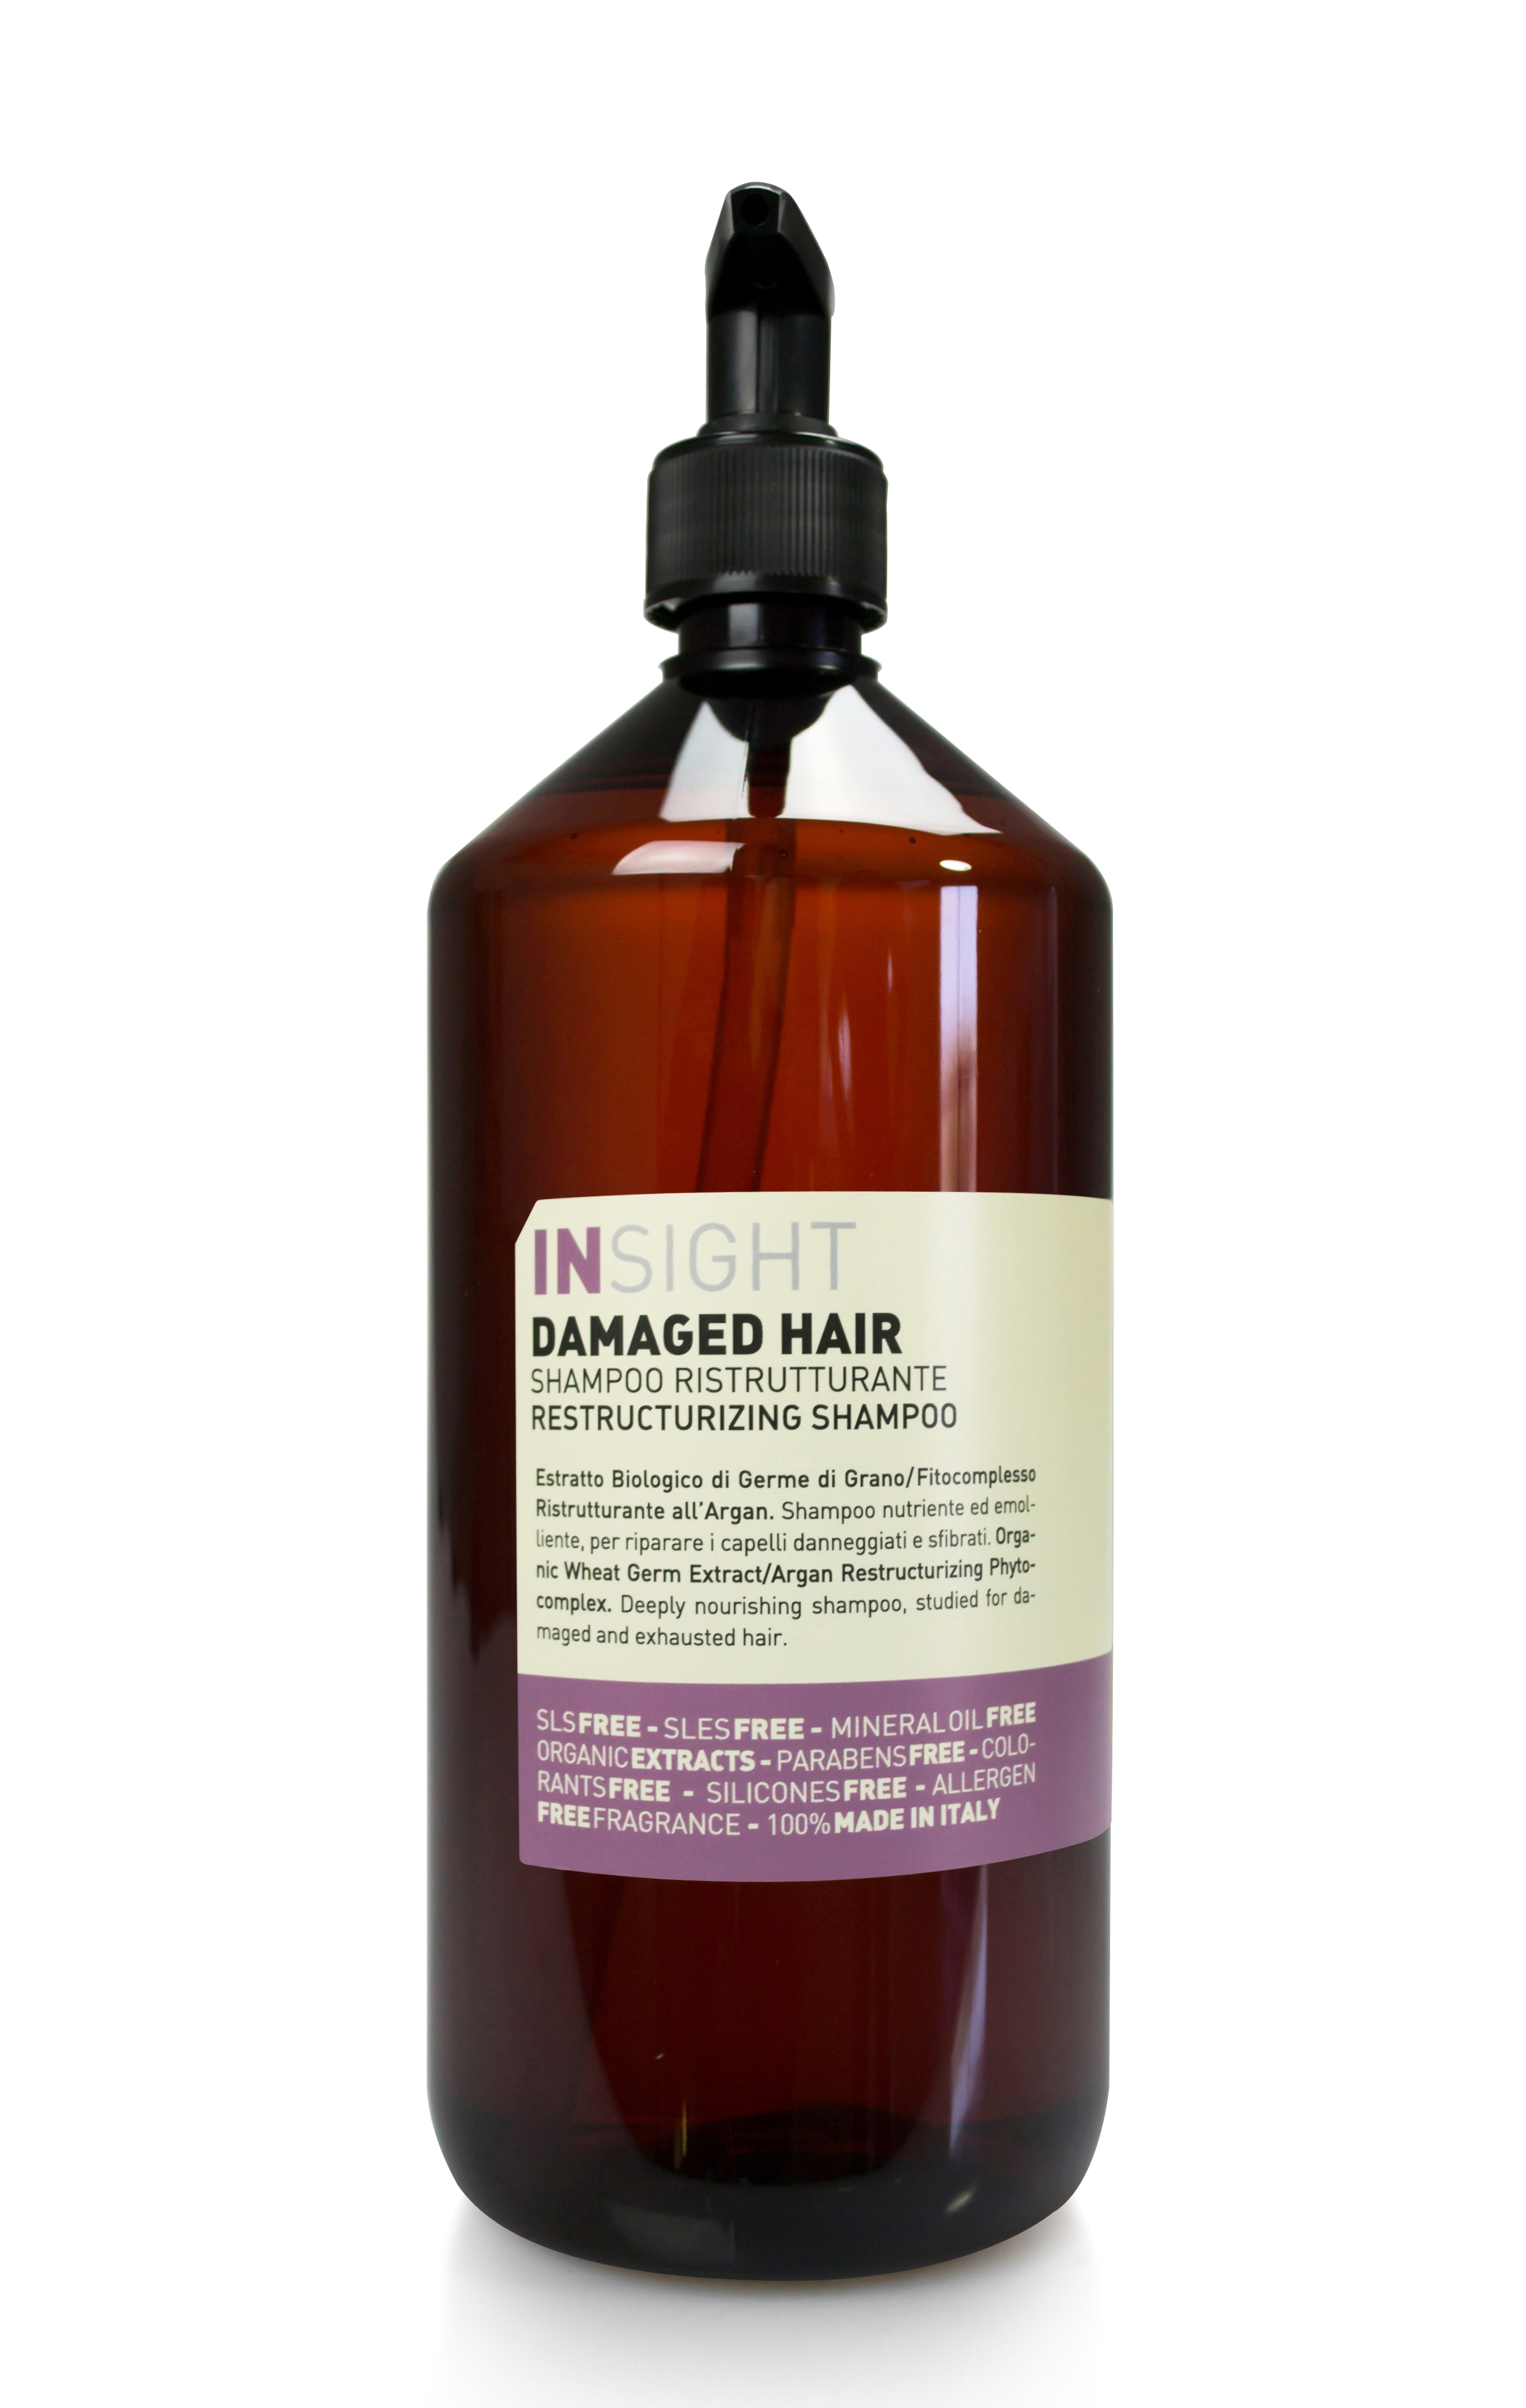 DAMAGED HAIR RESTRUCTURIZING SHAMPOO